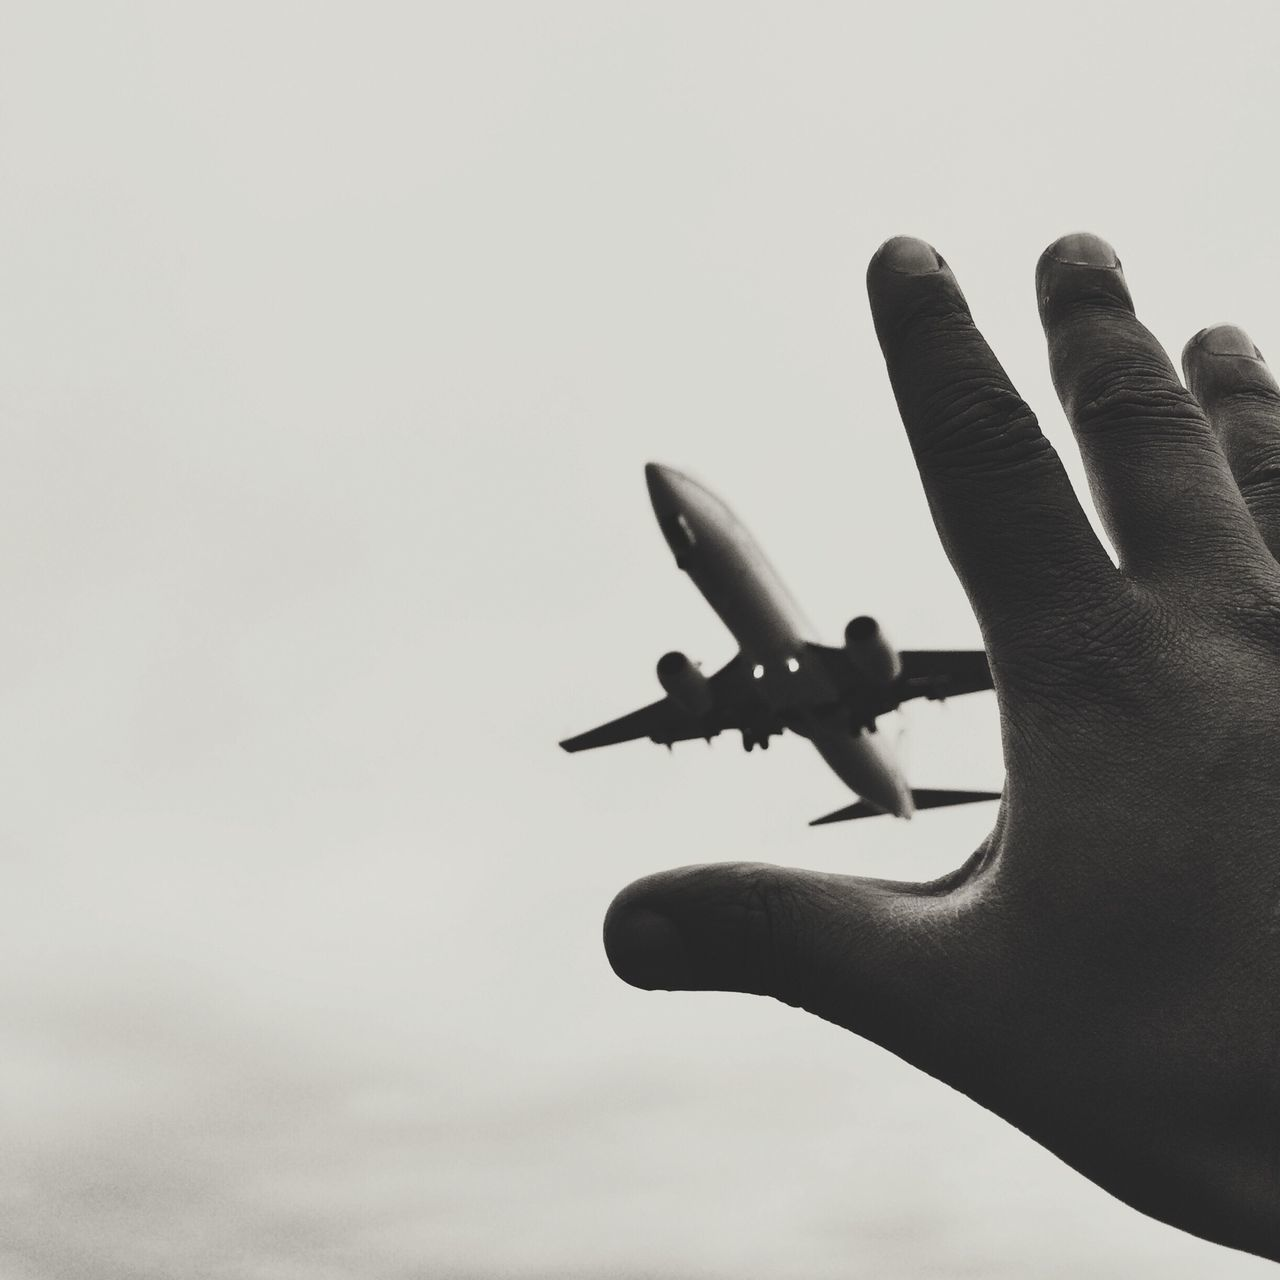 Optical Illusion Of Hand Reaching Airplane Against Sky